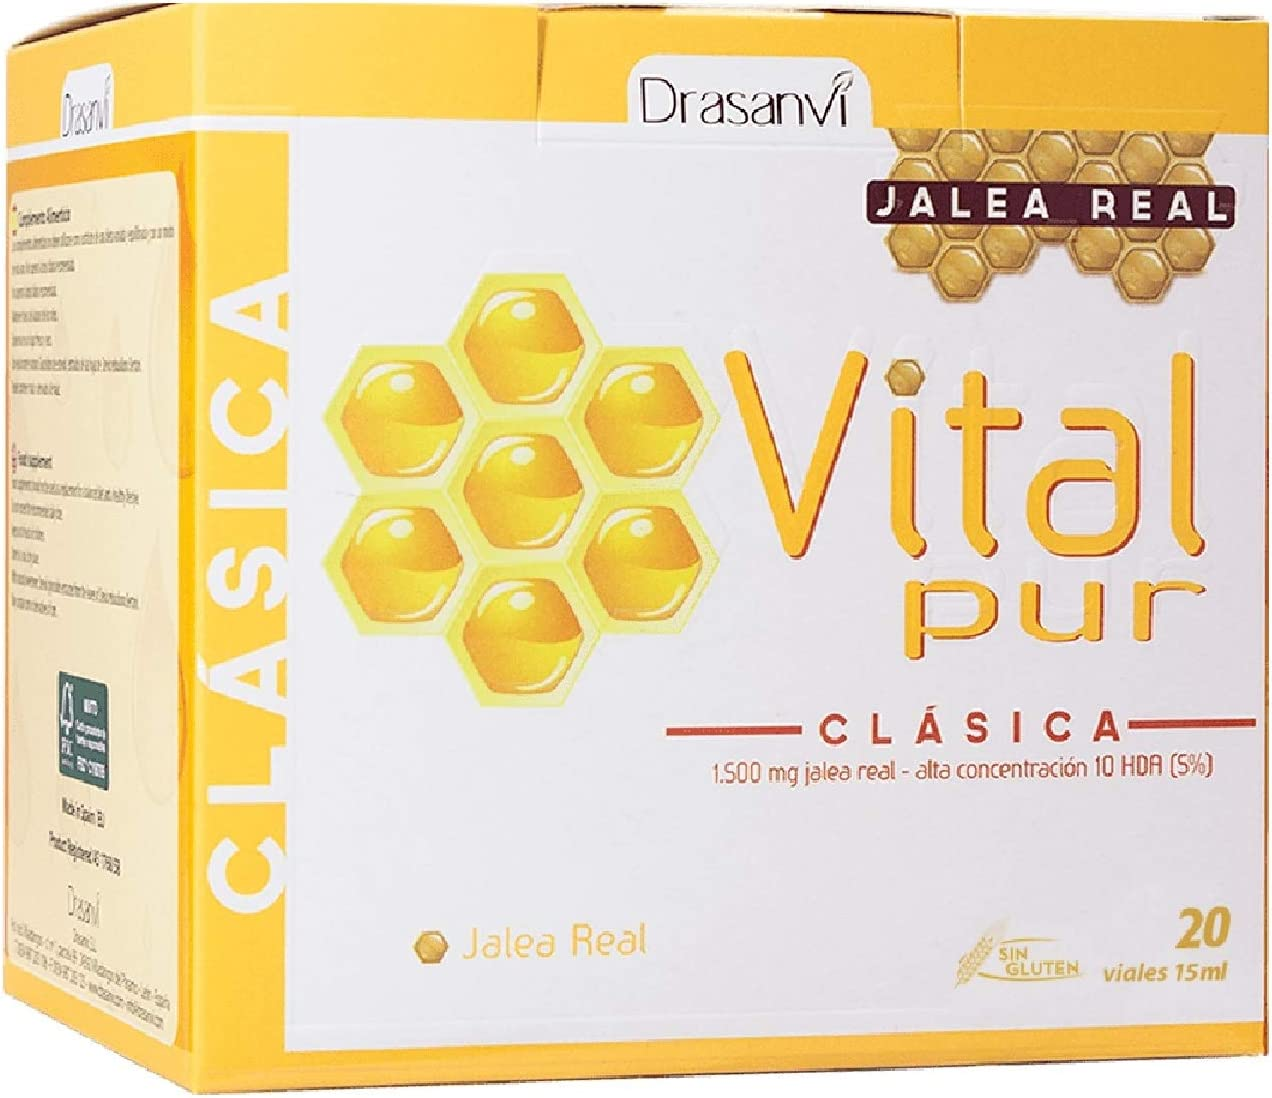 DRASANVI Vitalpur Classic 20 vials - Health Care - Vitamins - Food Supplement - Royal Jelly - Skin Hydration - Strengthens The Digestive System and intestinal Flora - Increases Vitality - Natural